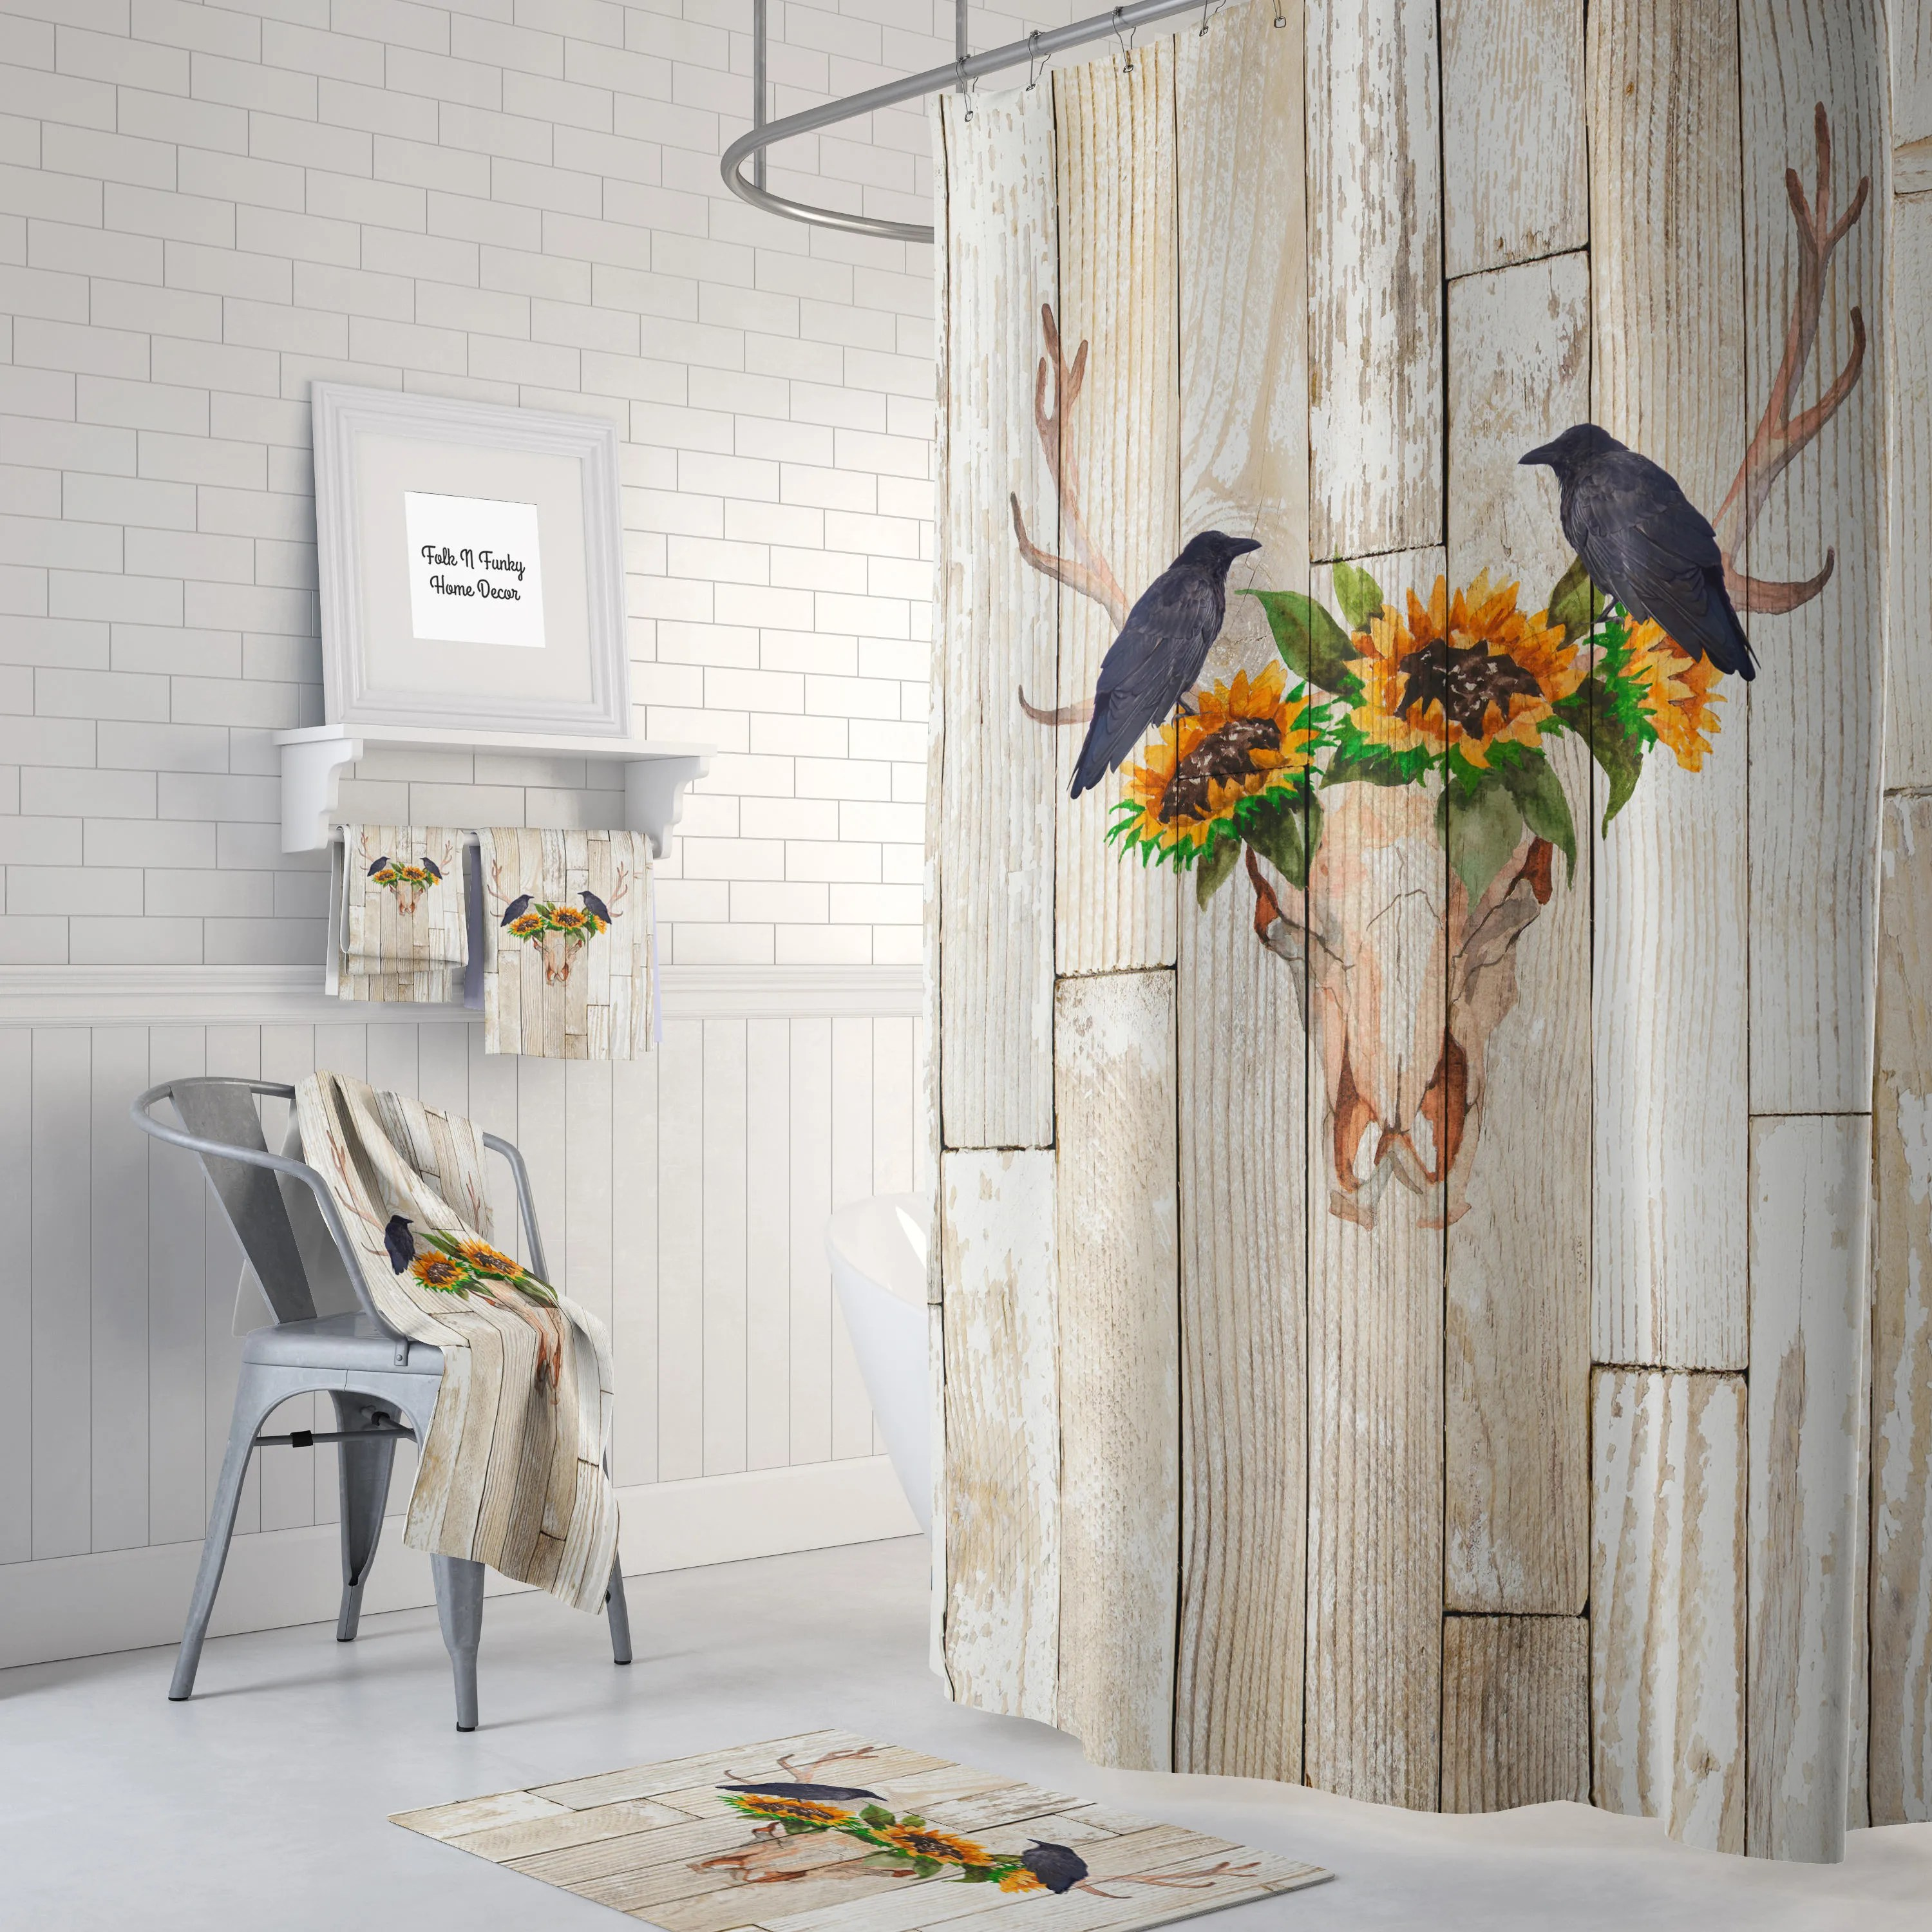 Cheap Rustic Shower Curtains Rustic Shower Curtain Antlers Sunflowers Crow Rustic Wood